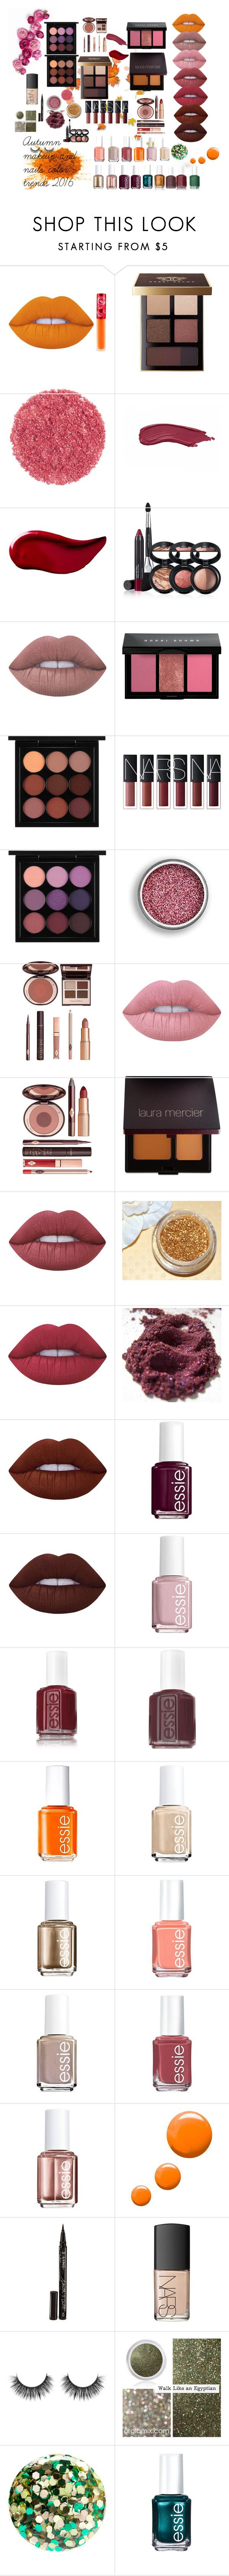 """Autumn makeup and nails color trends 2016"" by genesiscamilo on Polyvore featuring Belleza, Lime Crime, Bobbi Brown Cosmetics, Kat Von D, Laura Geller, MAC Cosmetics, Charlotte Tilbury, Laura Mercier, Essie y Topshop"